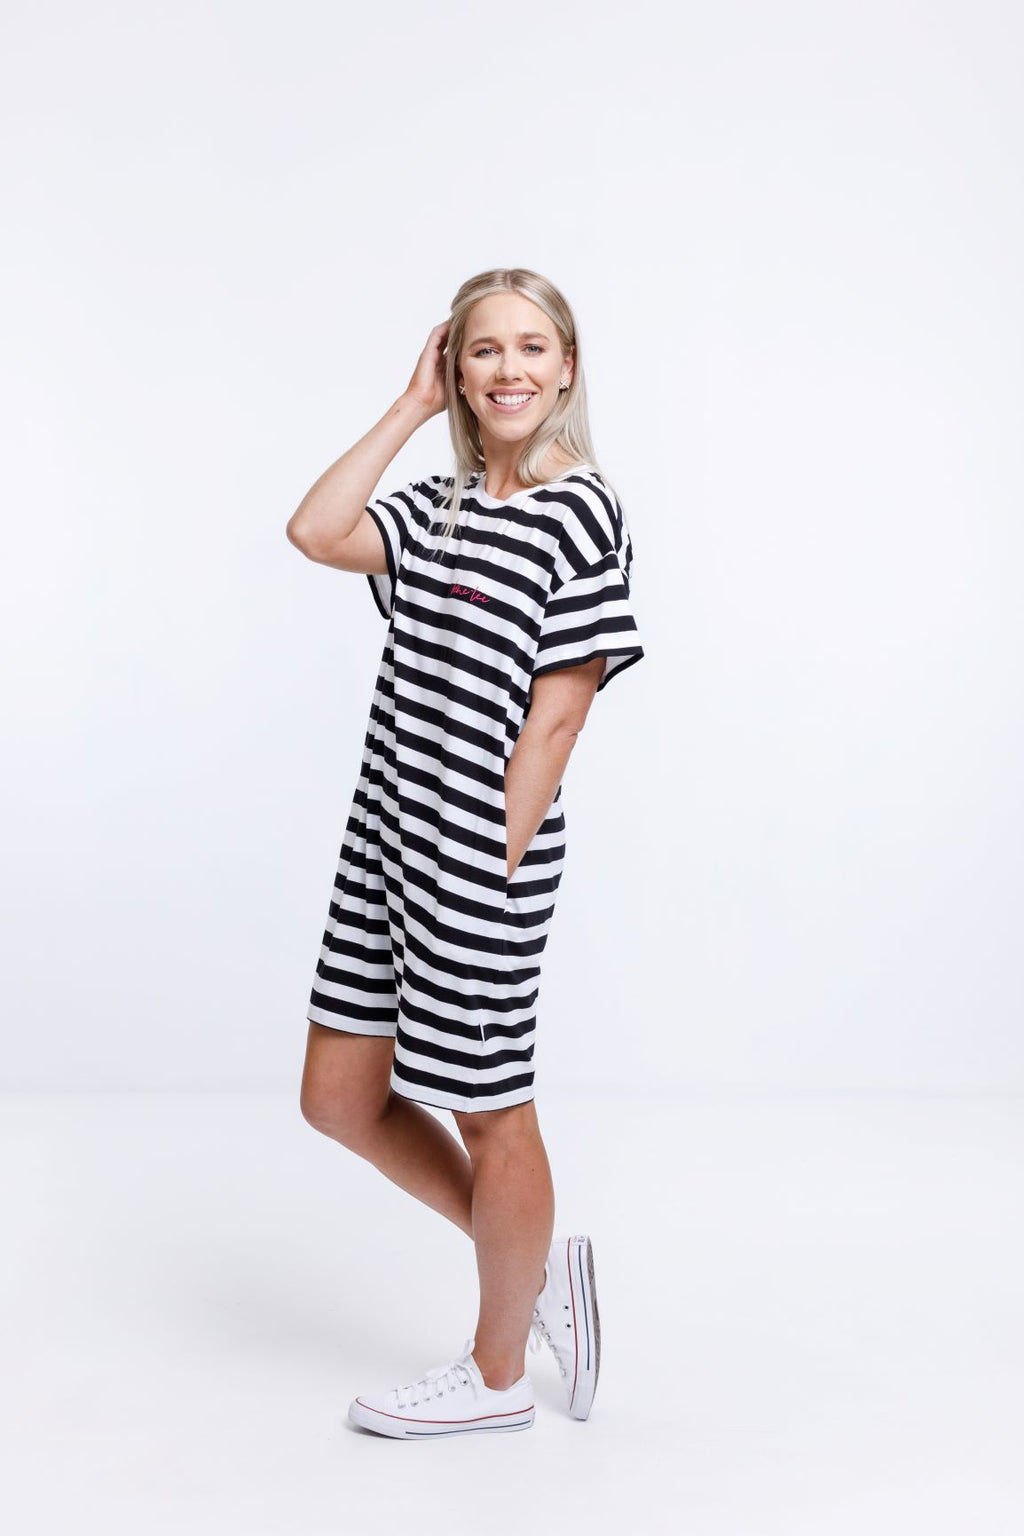 BOYFRIEND DRESS - Black & White Stripes with Pink Embroidered Logo